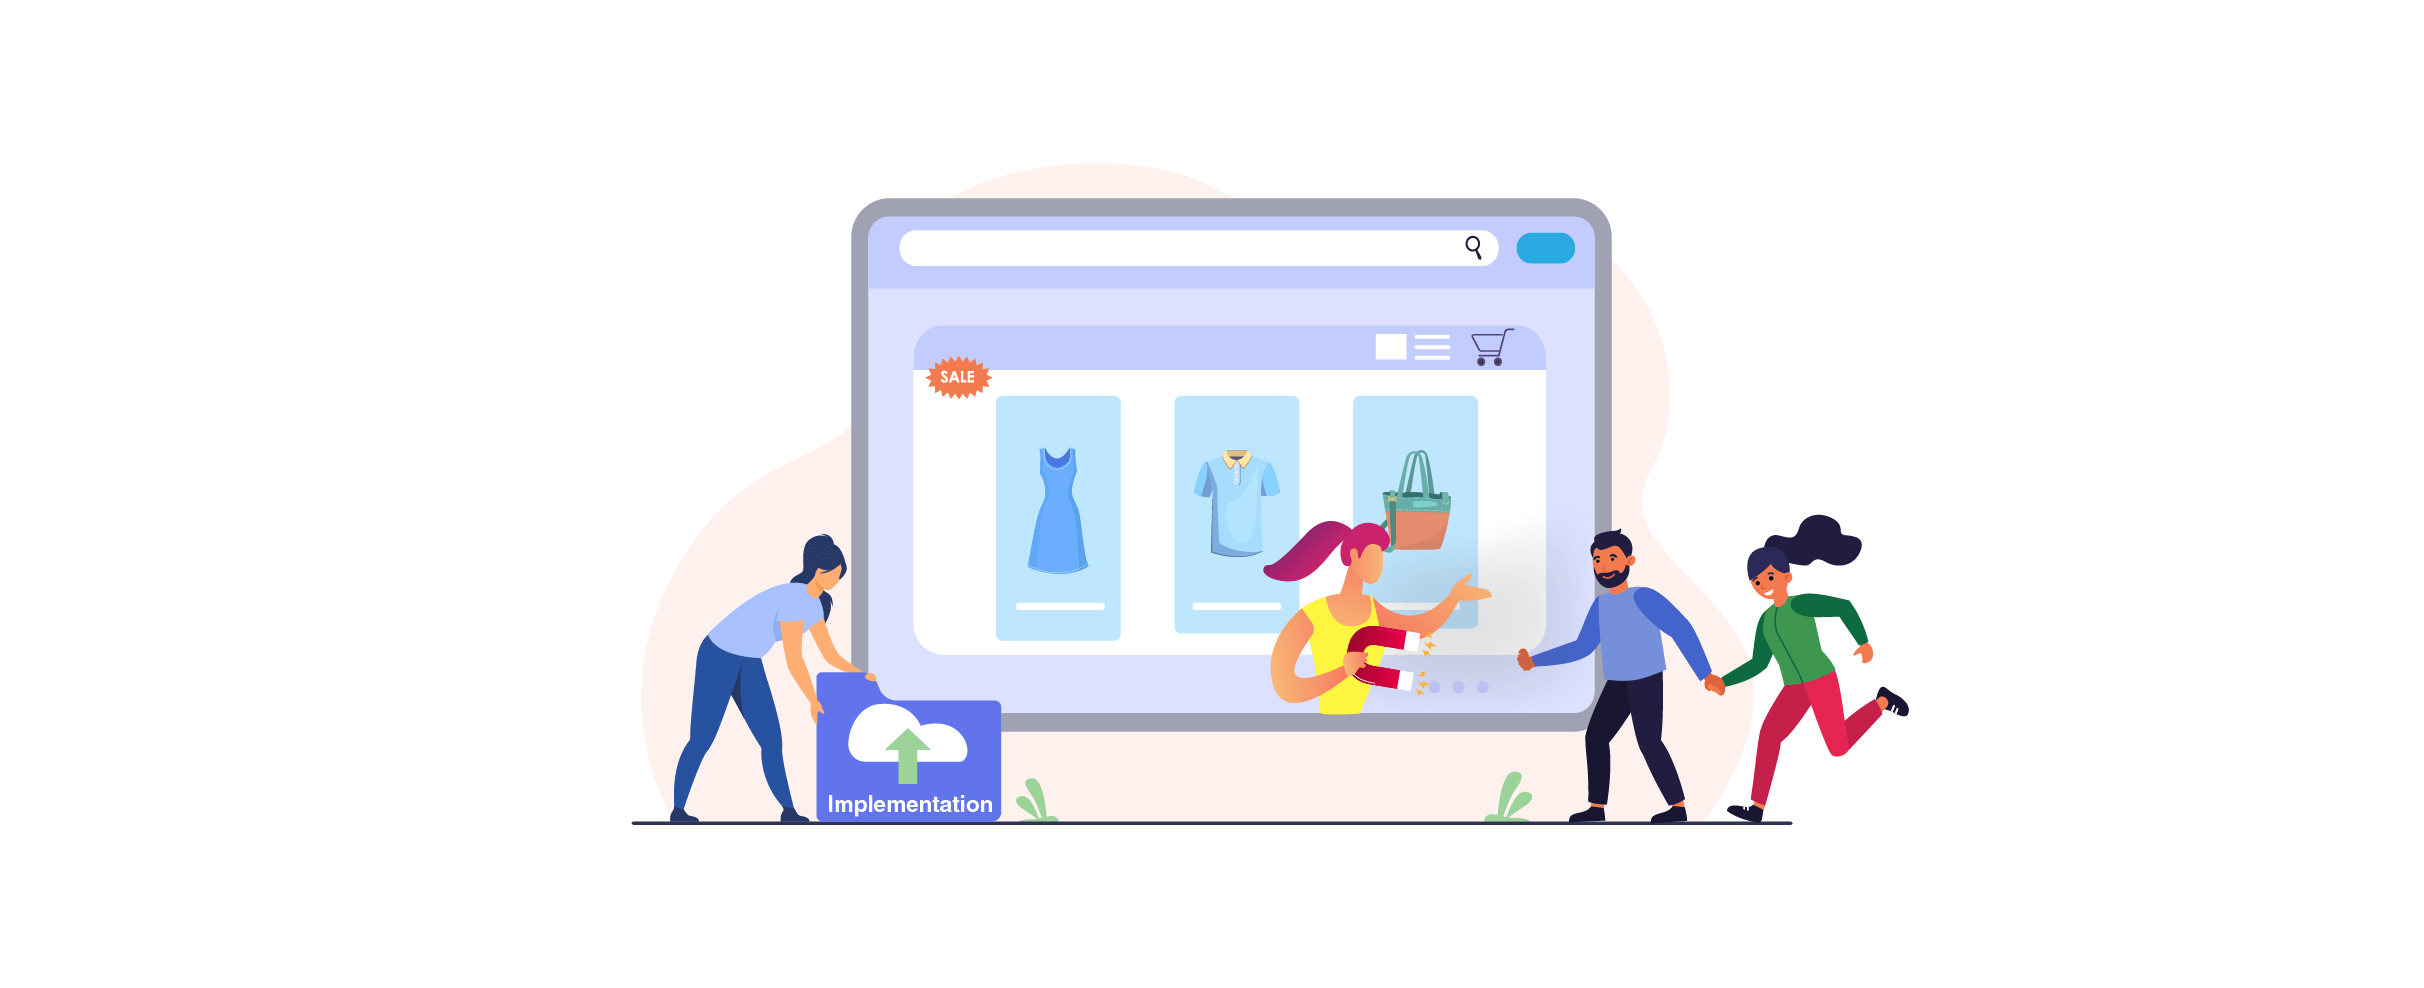 How To Implement a Referral Program in Your WooCommerce Store